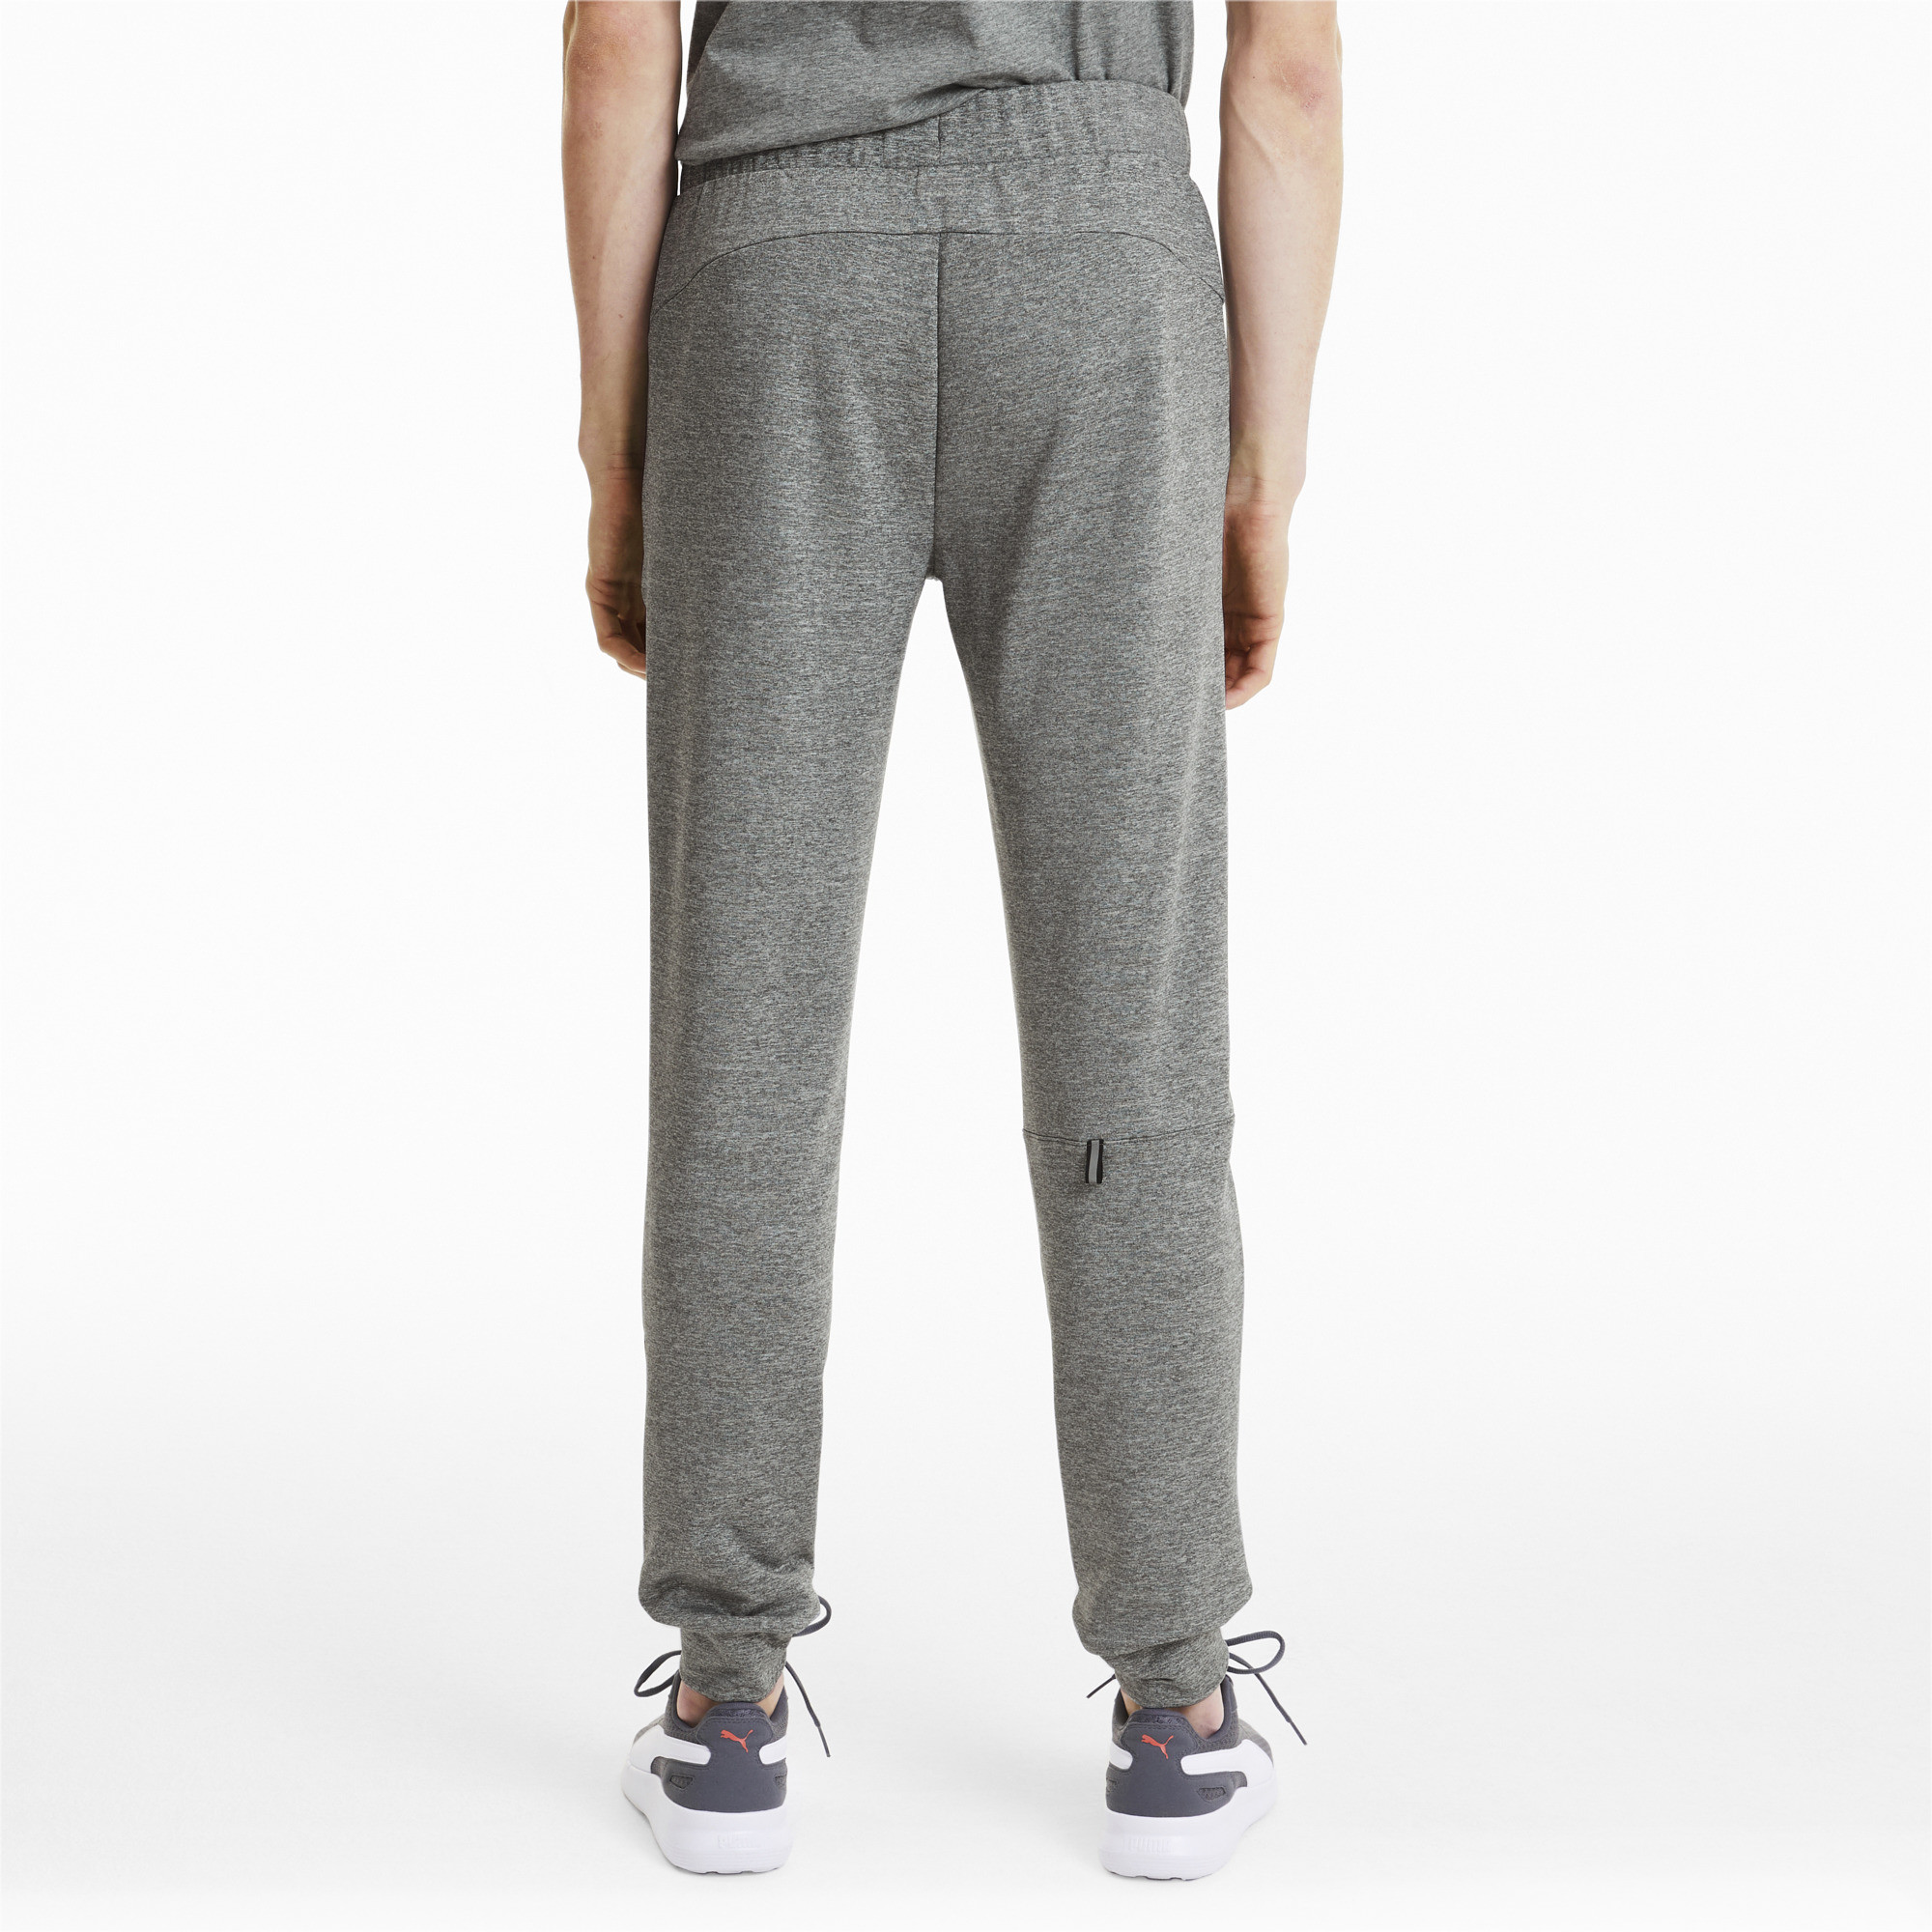 PUMA-RTG-Men-039-s-Knitted-Pants-Men-Knitted-Pants-Basics thumbnail 10